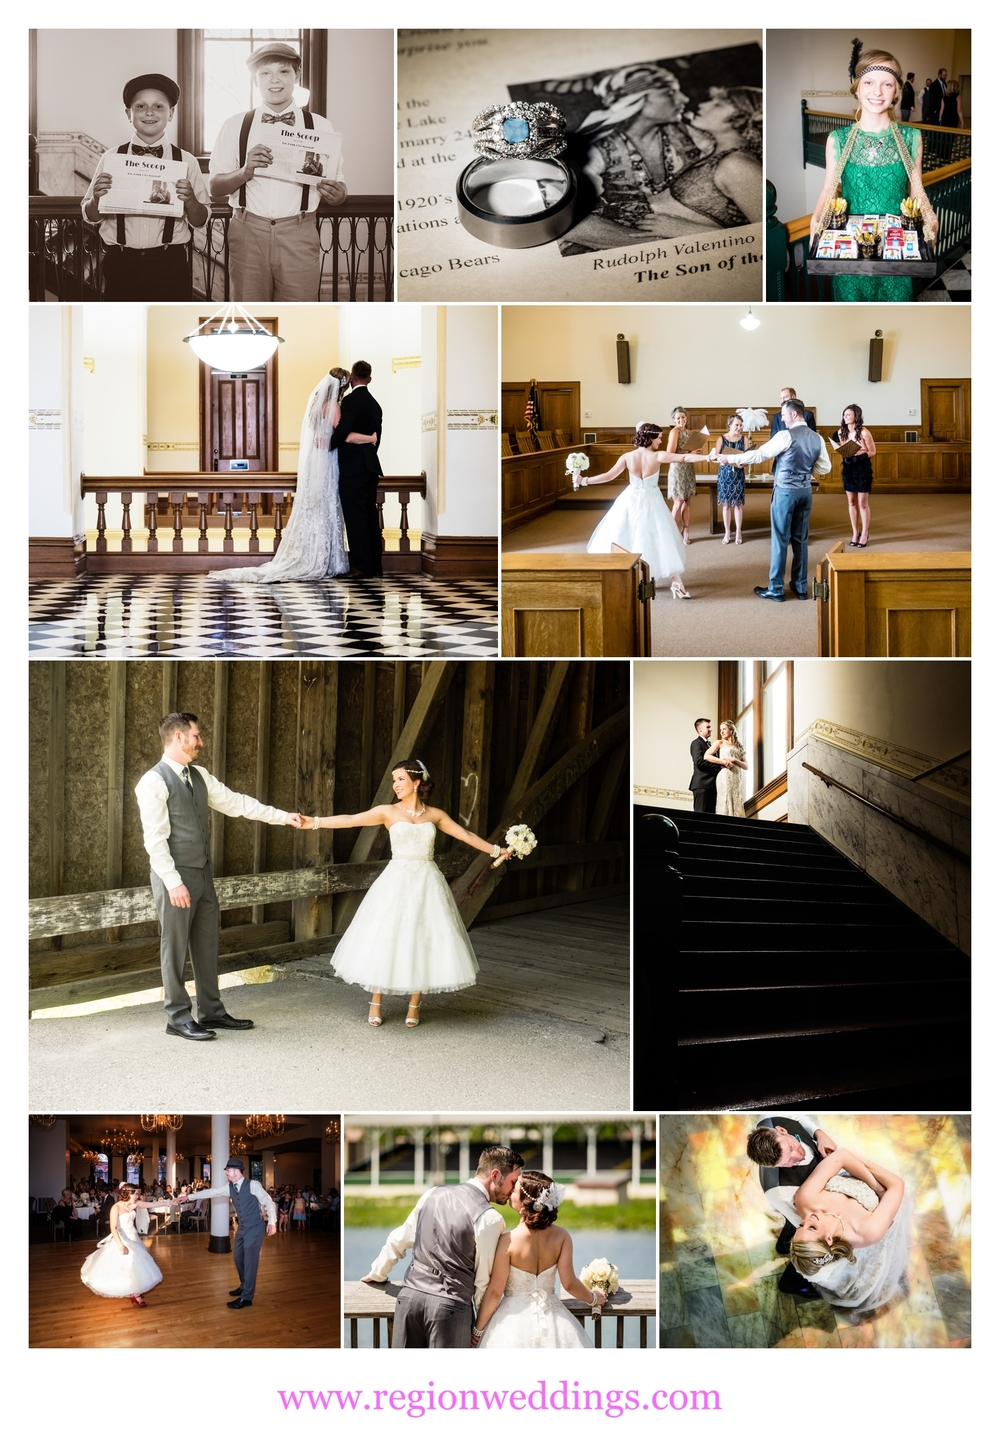 northwest-indiana-wedding-photography-collage2.jpg